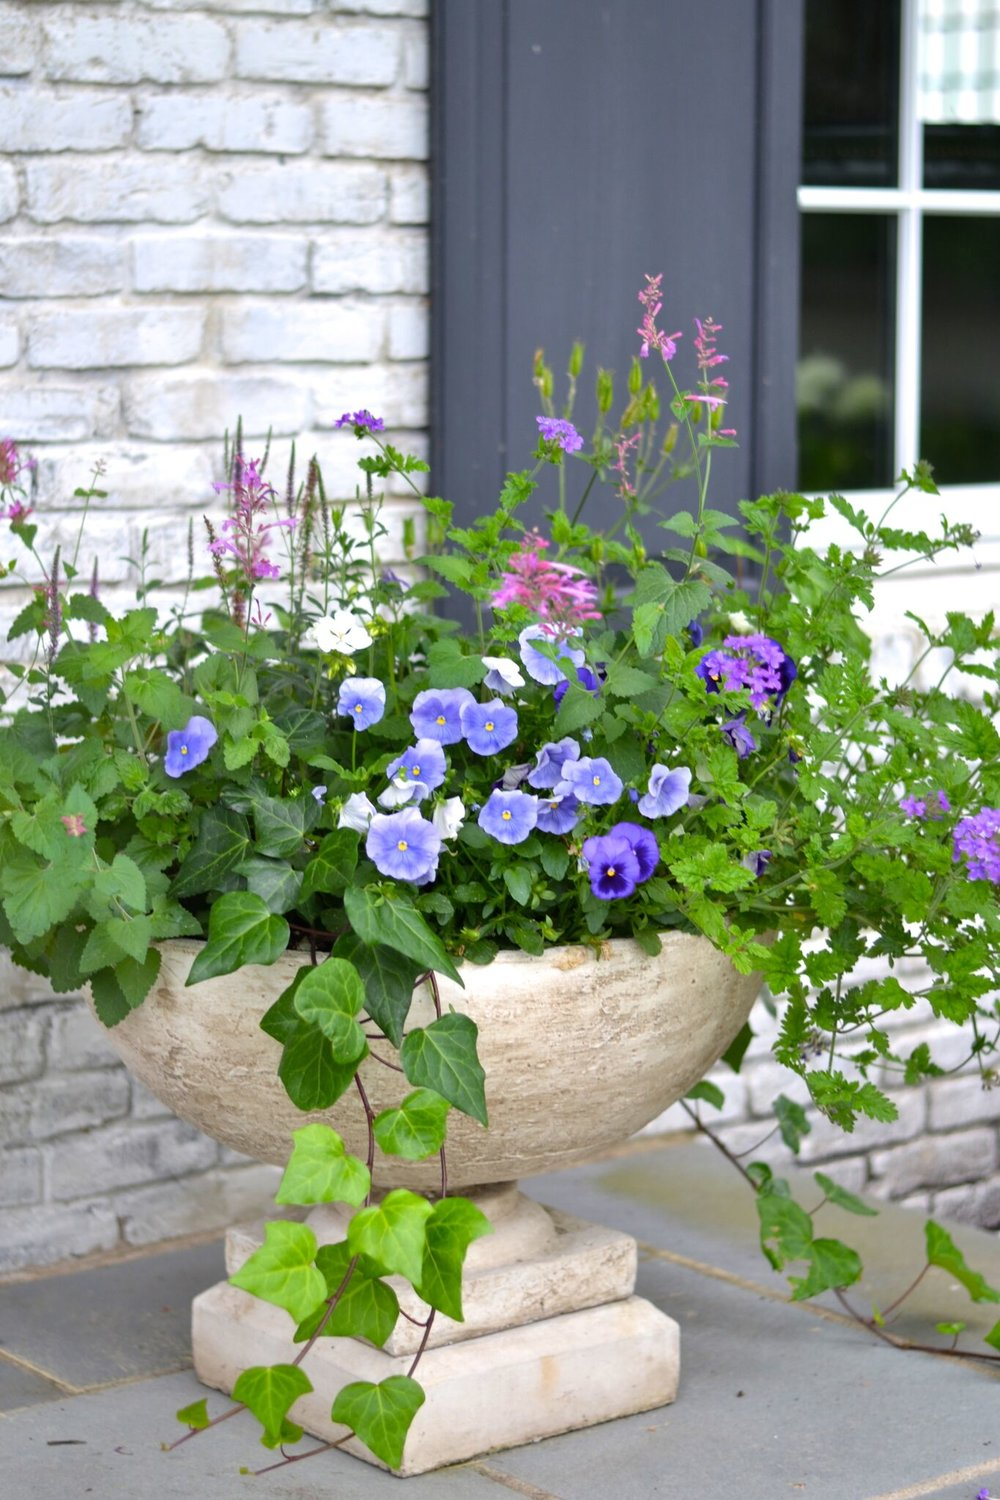 les-fleurs-home-gardening-benefits-potting.jpg